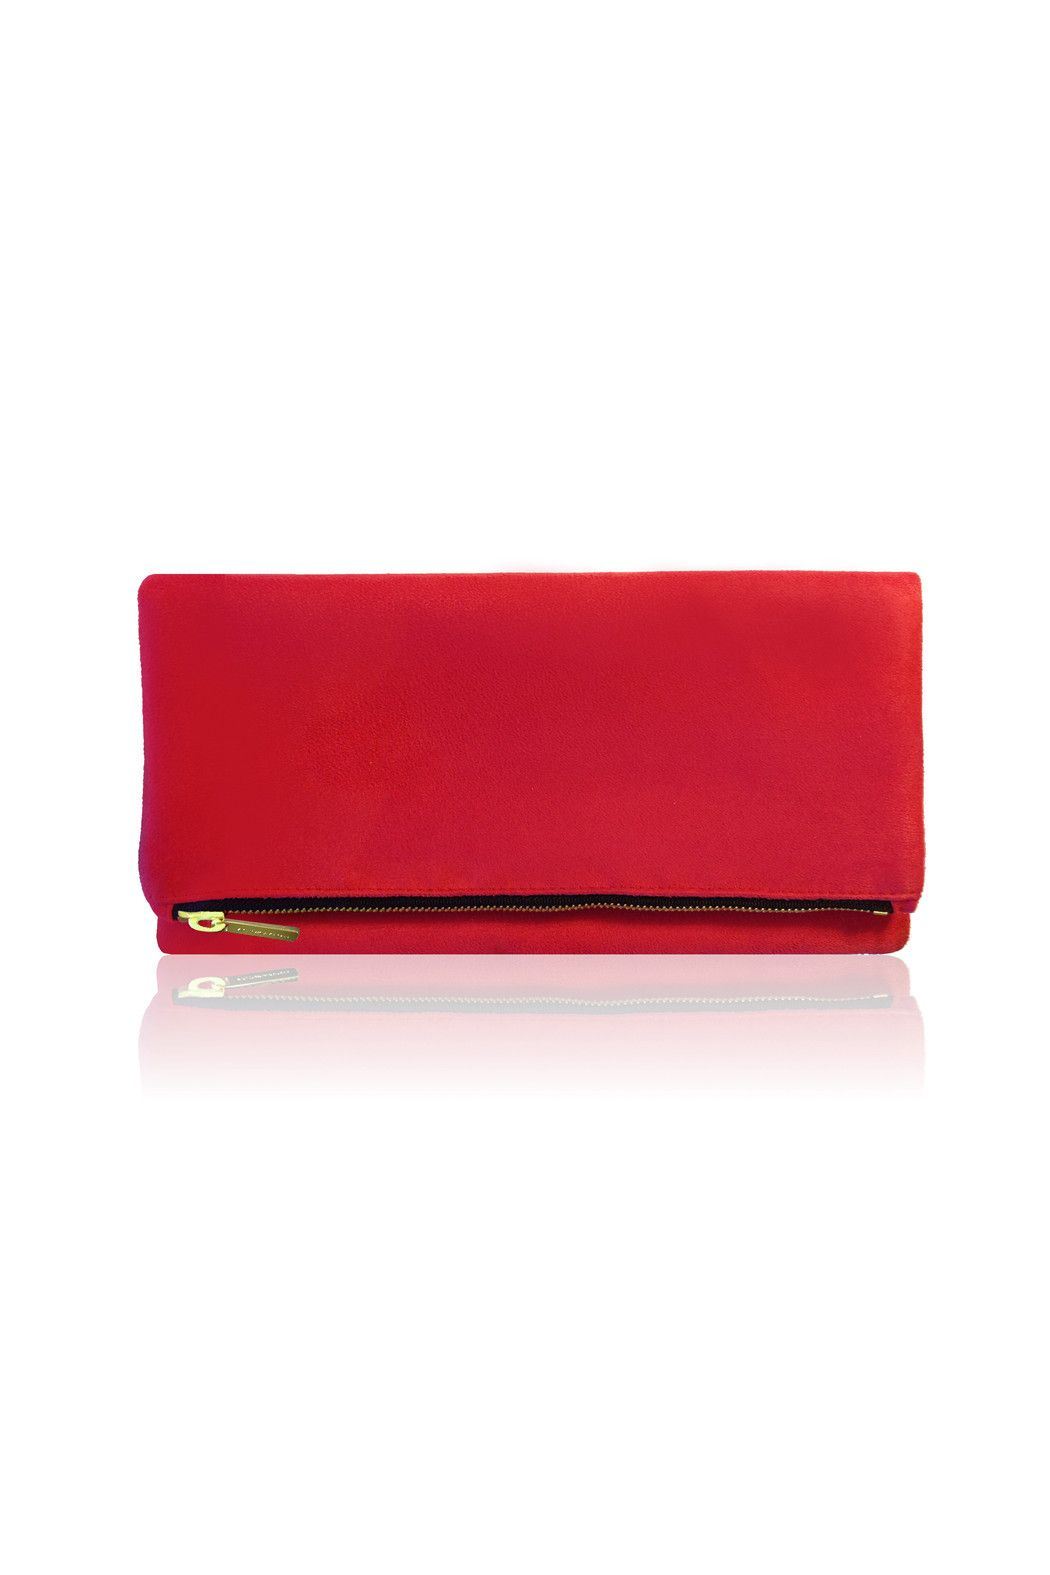 """This foldover clutch is the result of notable 21st century craftsmanship. The smooth, carefully selected materials, distinctive polka dot lining and the fine stitching along with the seams cause this foldover clutch to elegantly stand out. This is luxery redefined. Style it with skinny jeans and a blouse or a cocktail dress and your favorite pumps!    Colors may appear different on screen.    Dimensions: 11""""L x 6""""H x 1""""W    Open: 11x11""""    Featured on: A Little Dash of Darling…"""